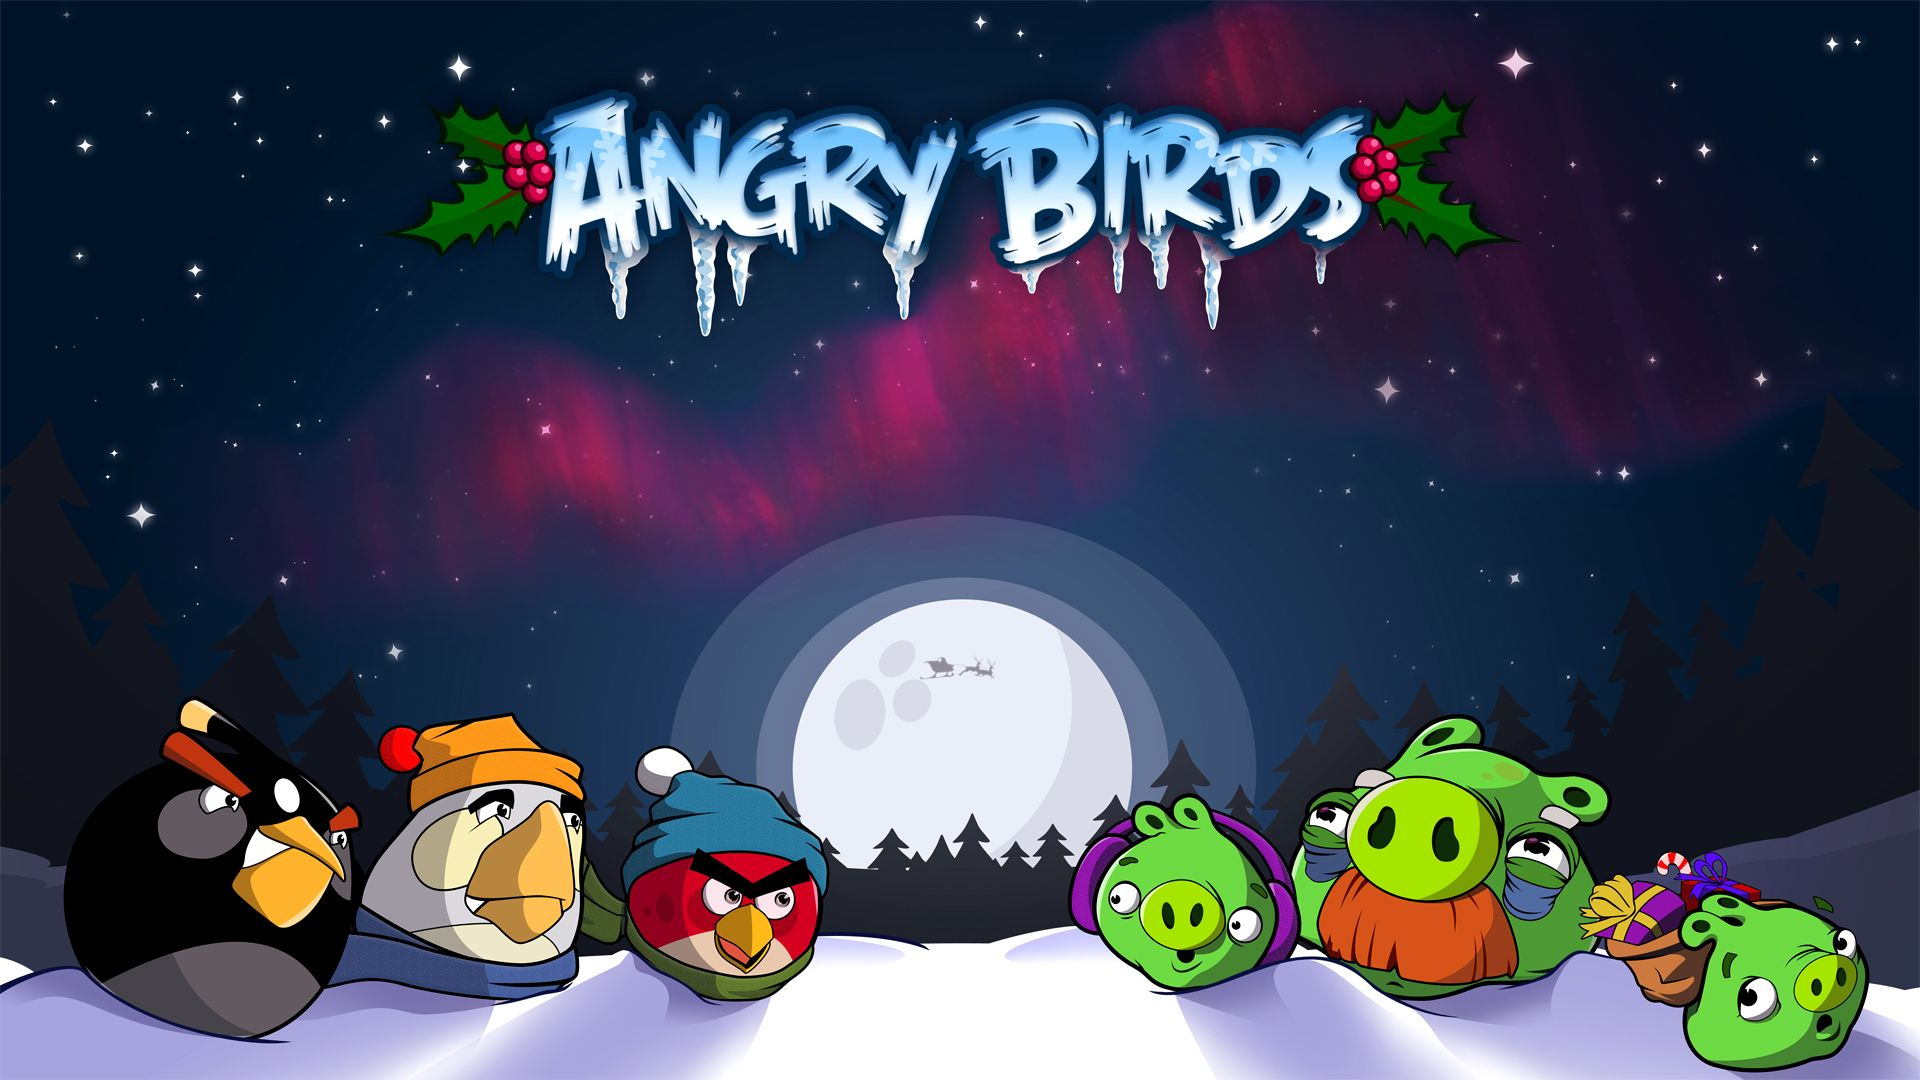 Ultimate Collection Of Angry Birds Desktop Wallpapers And Photo 1920x1080 Angry Birds Seasons Angry Birds Bird Wallpaper